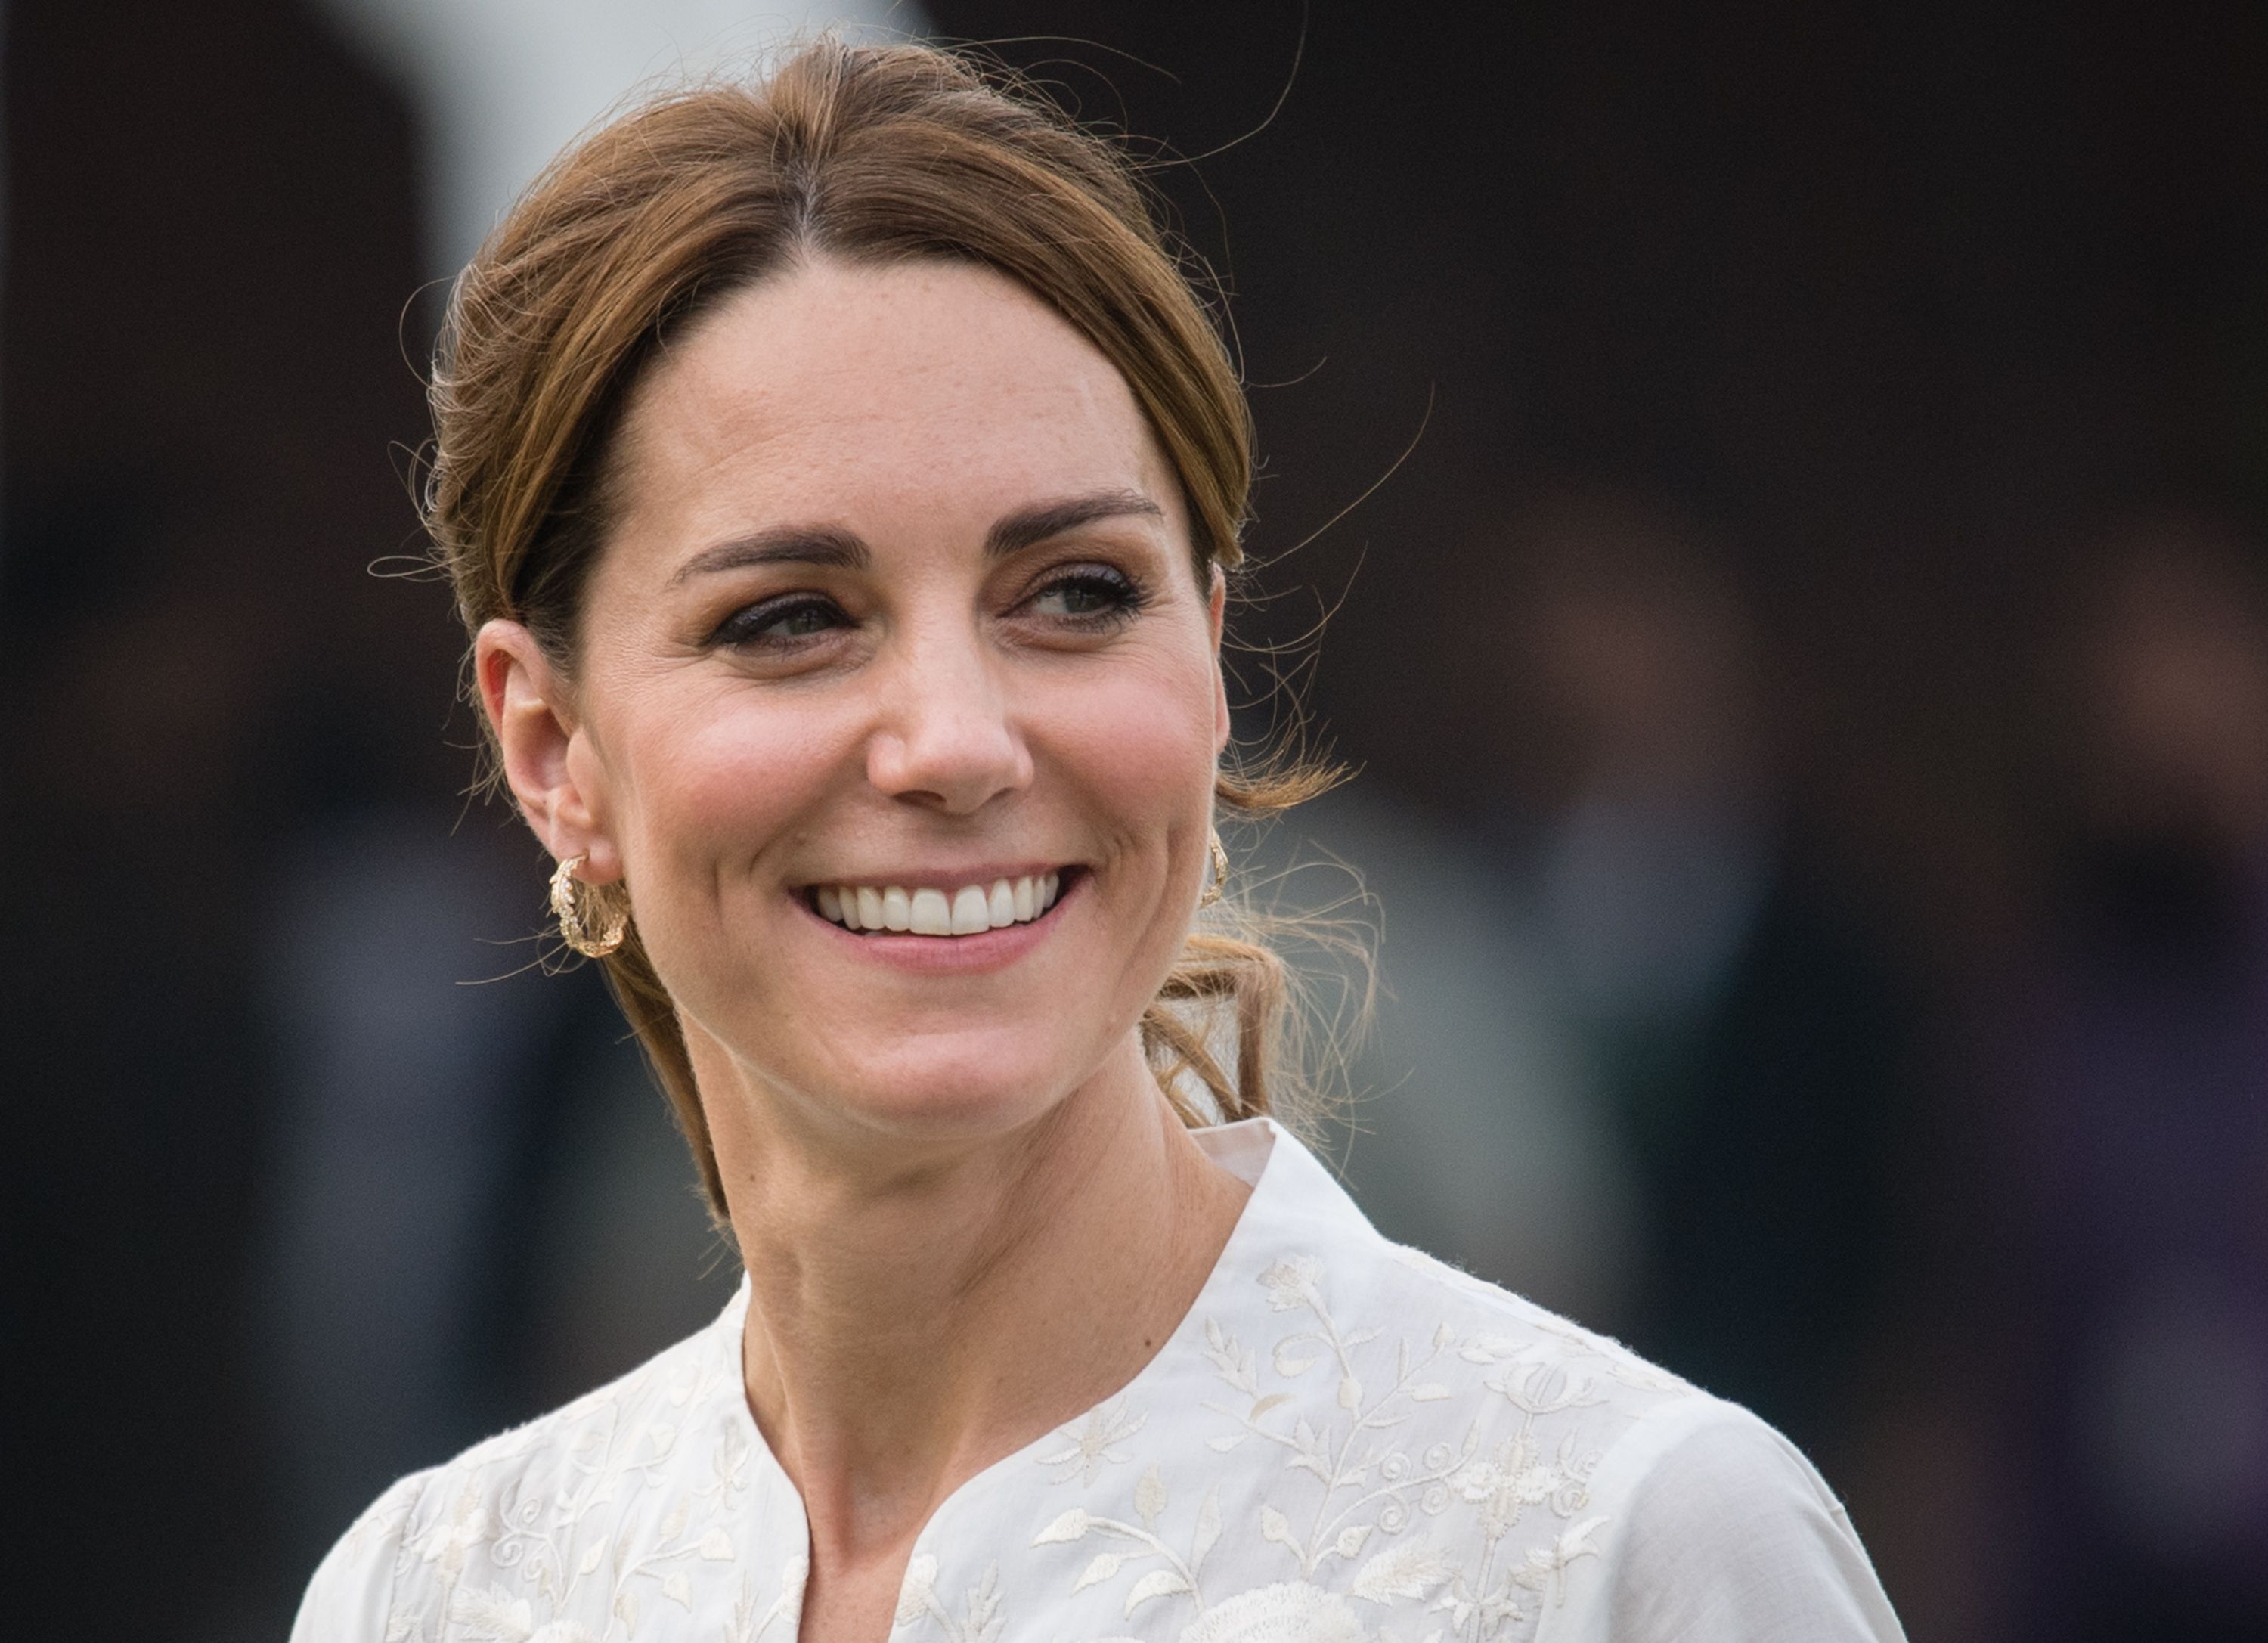 The Duchess of Cambridge has given her first ever interview as a royal